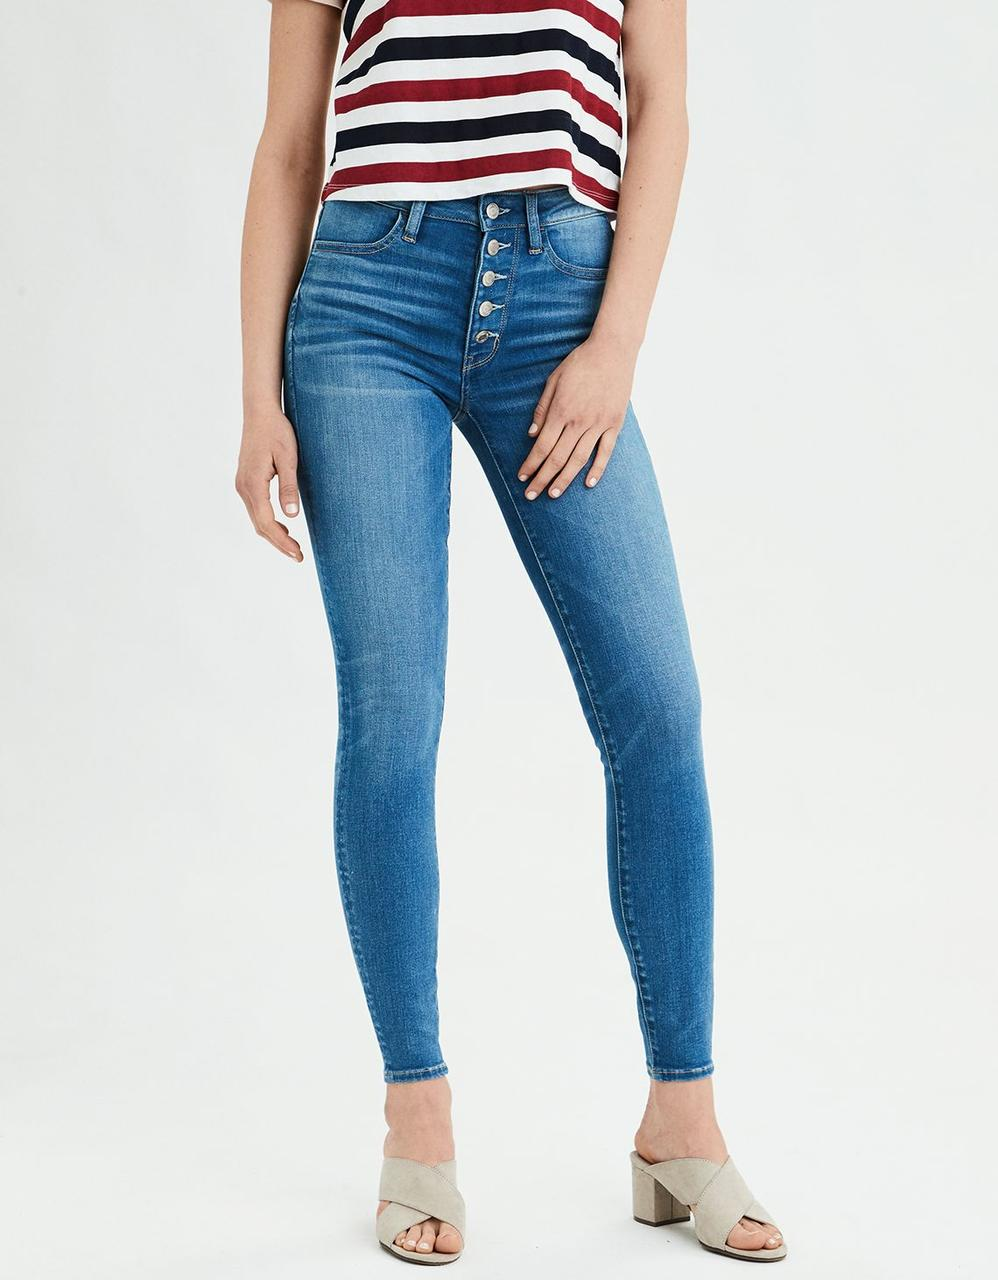 277944a72b8b9 American Eagle Jeans, AE NE(X)T LEVEL SUPER HIGH-WAISTED JEGGING for ...